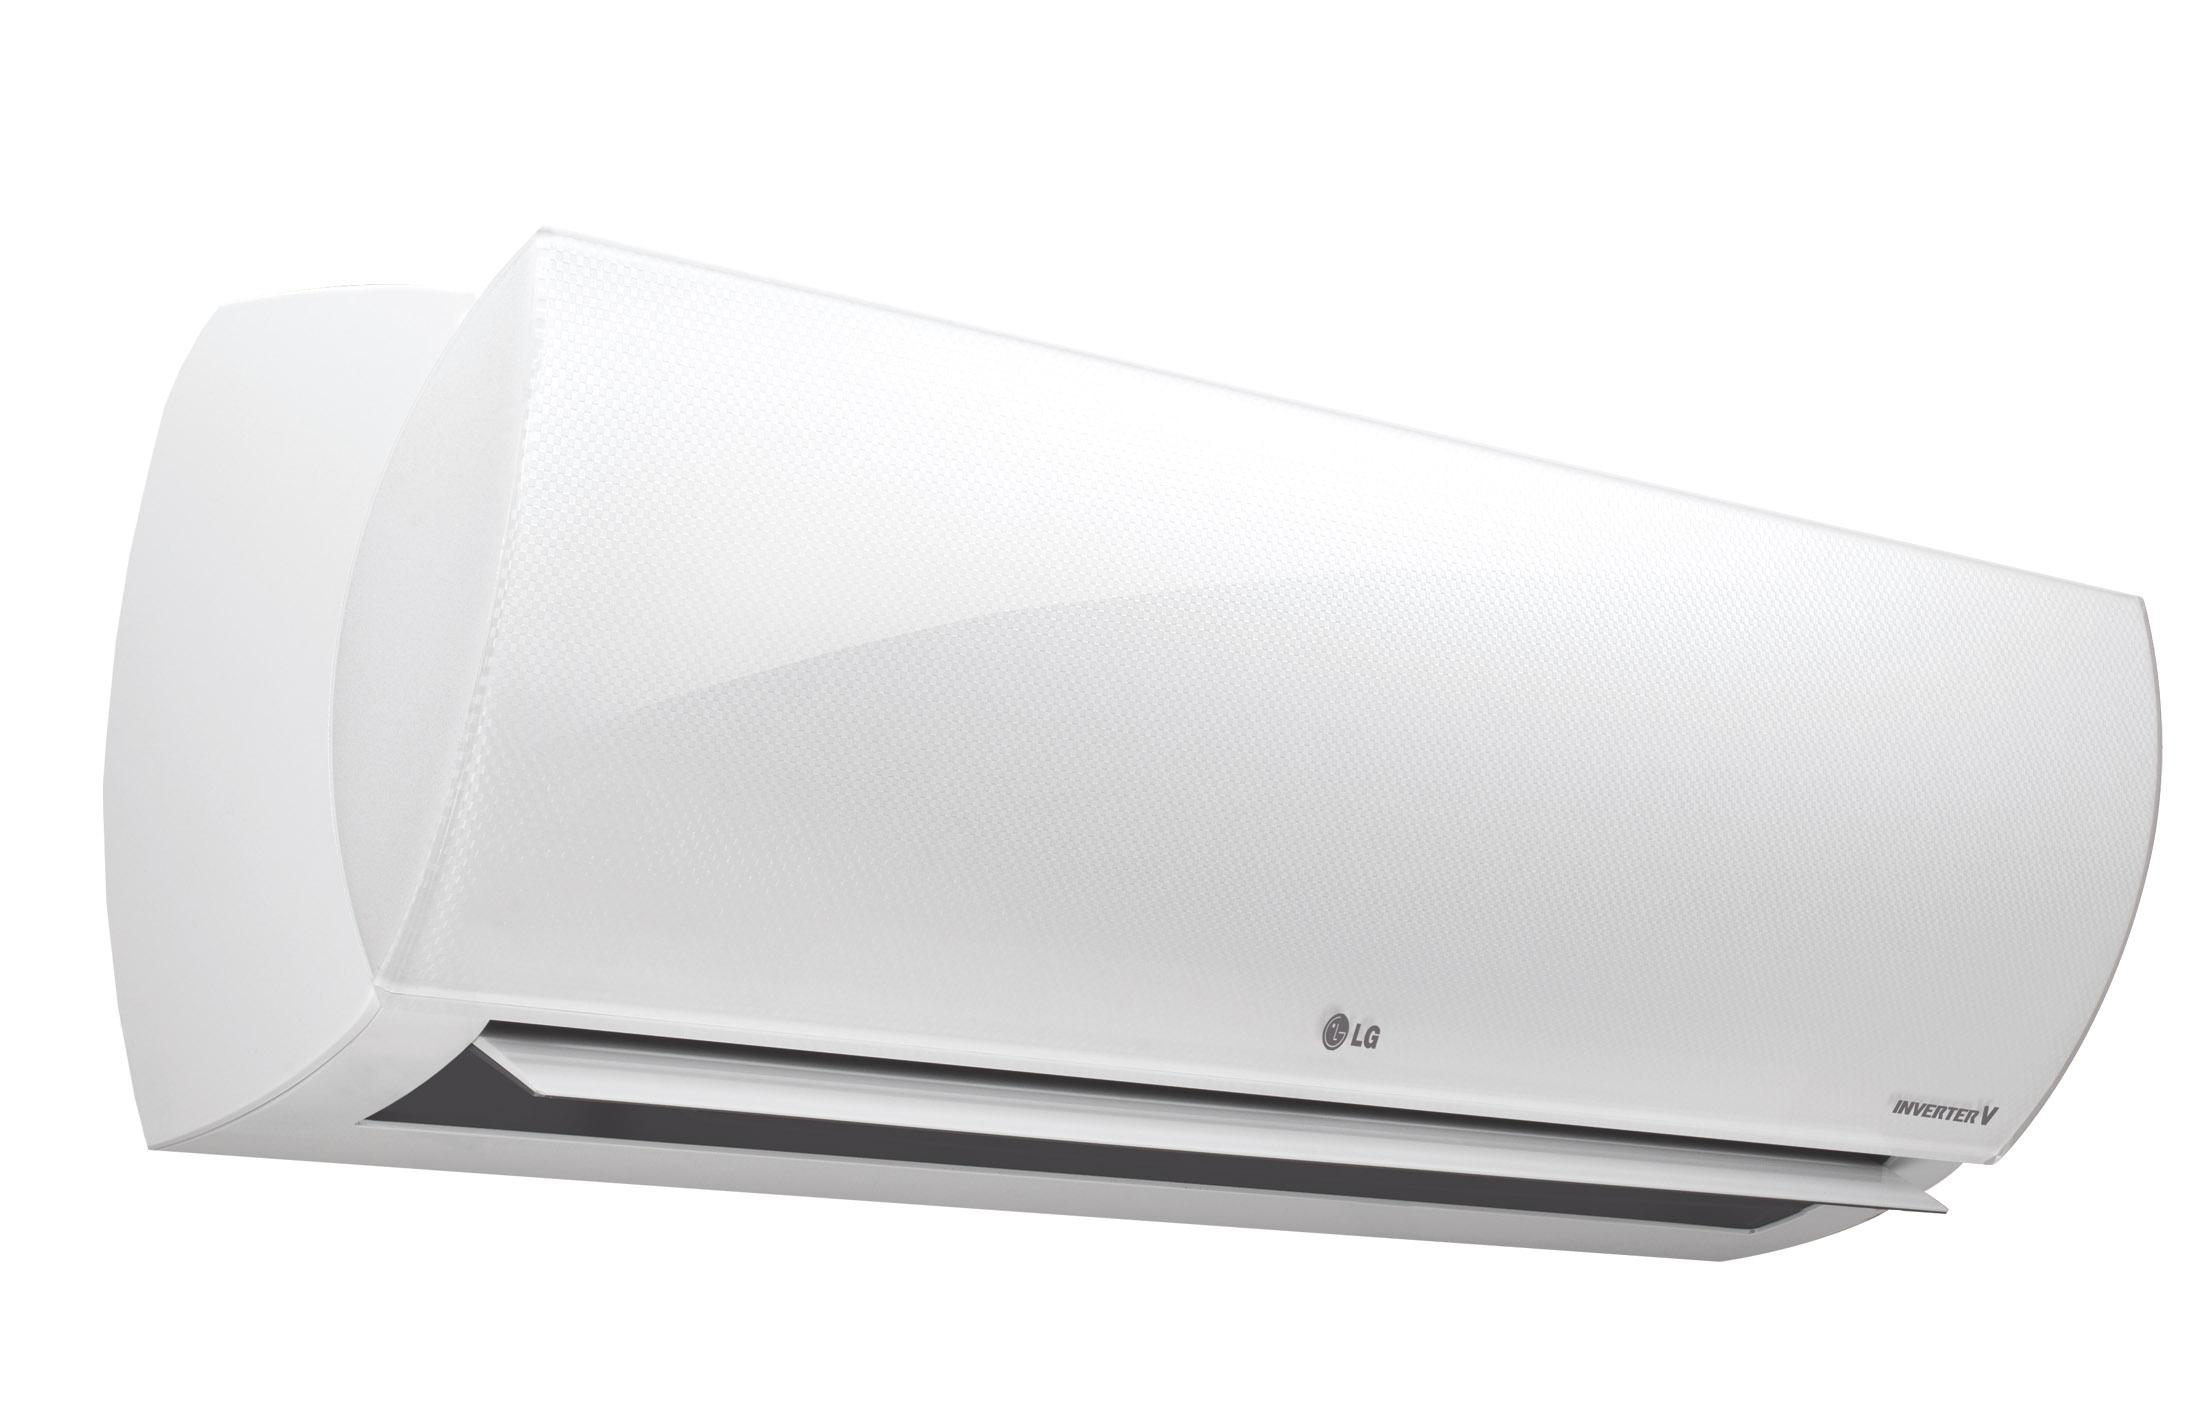 #676664 PRESTIGE FLAGSHIP – RF ENERGY Highest Rated 12886 Lg Wall Heater Air Conditioner img with 2189x1405 px on helpvideos.info - Air Conditioners, Air Coolers and more